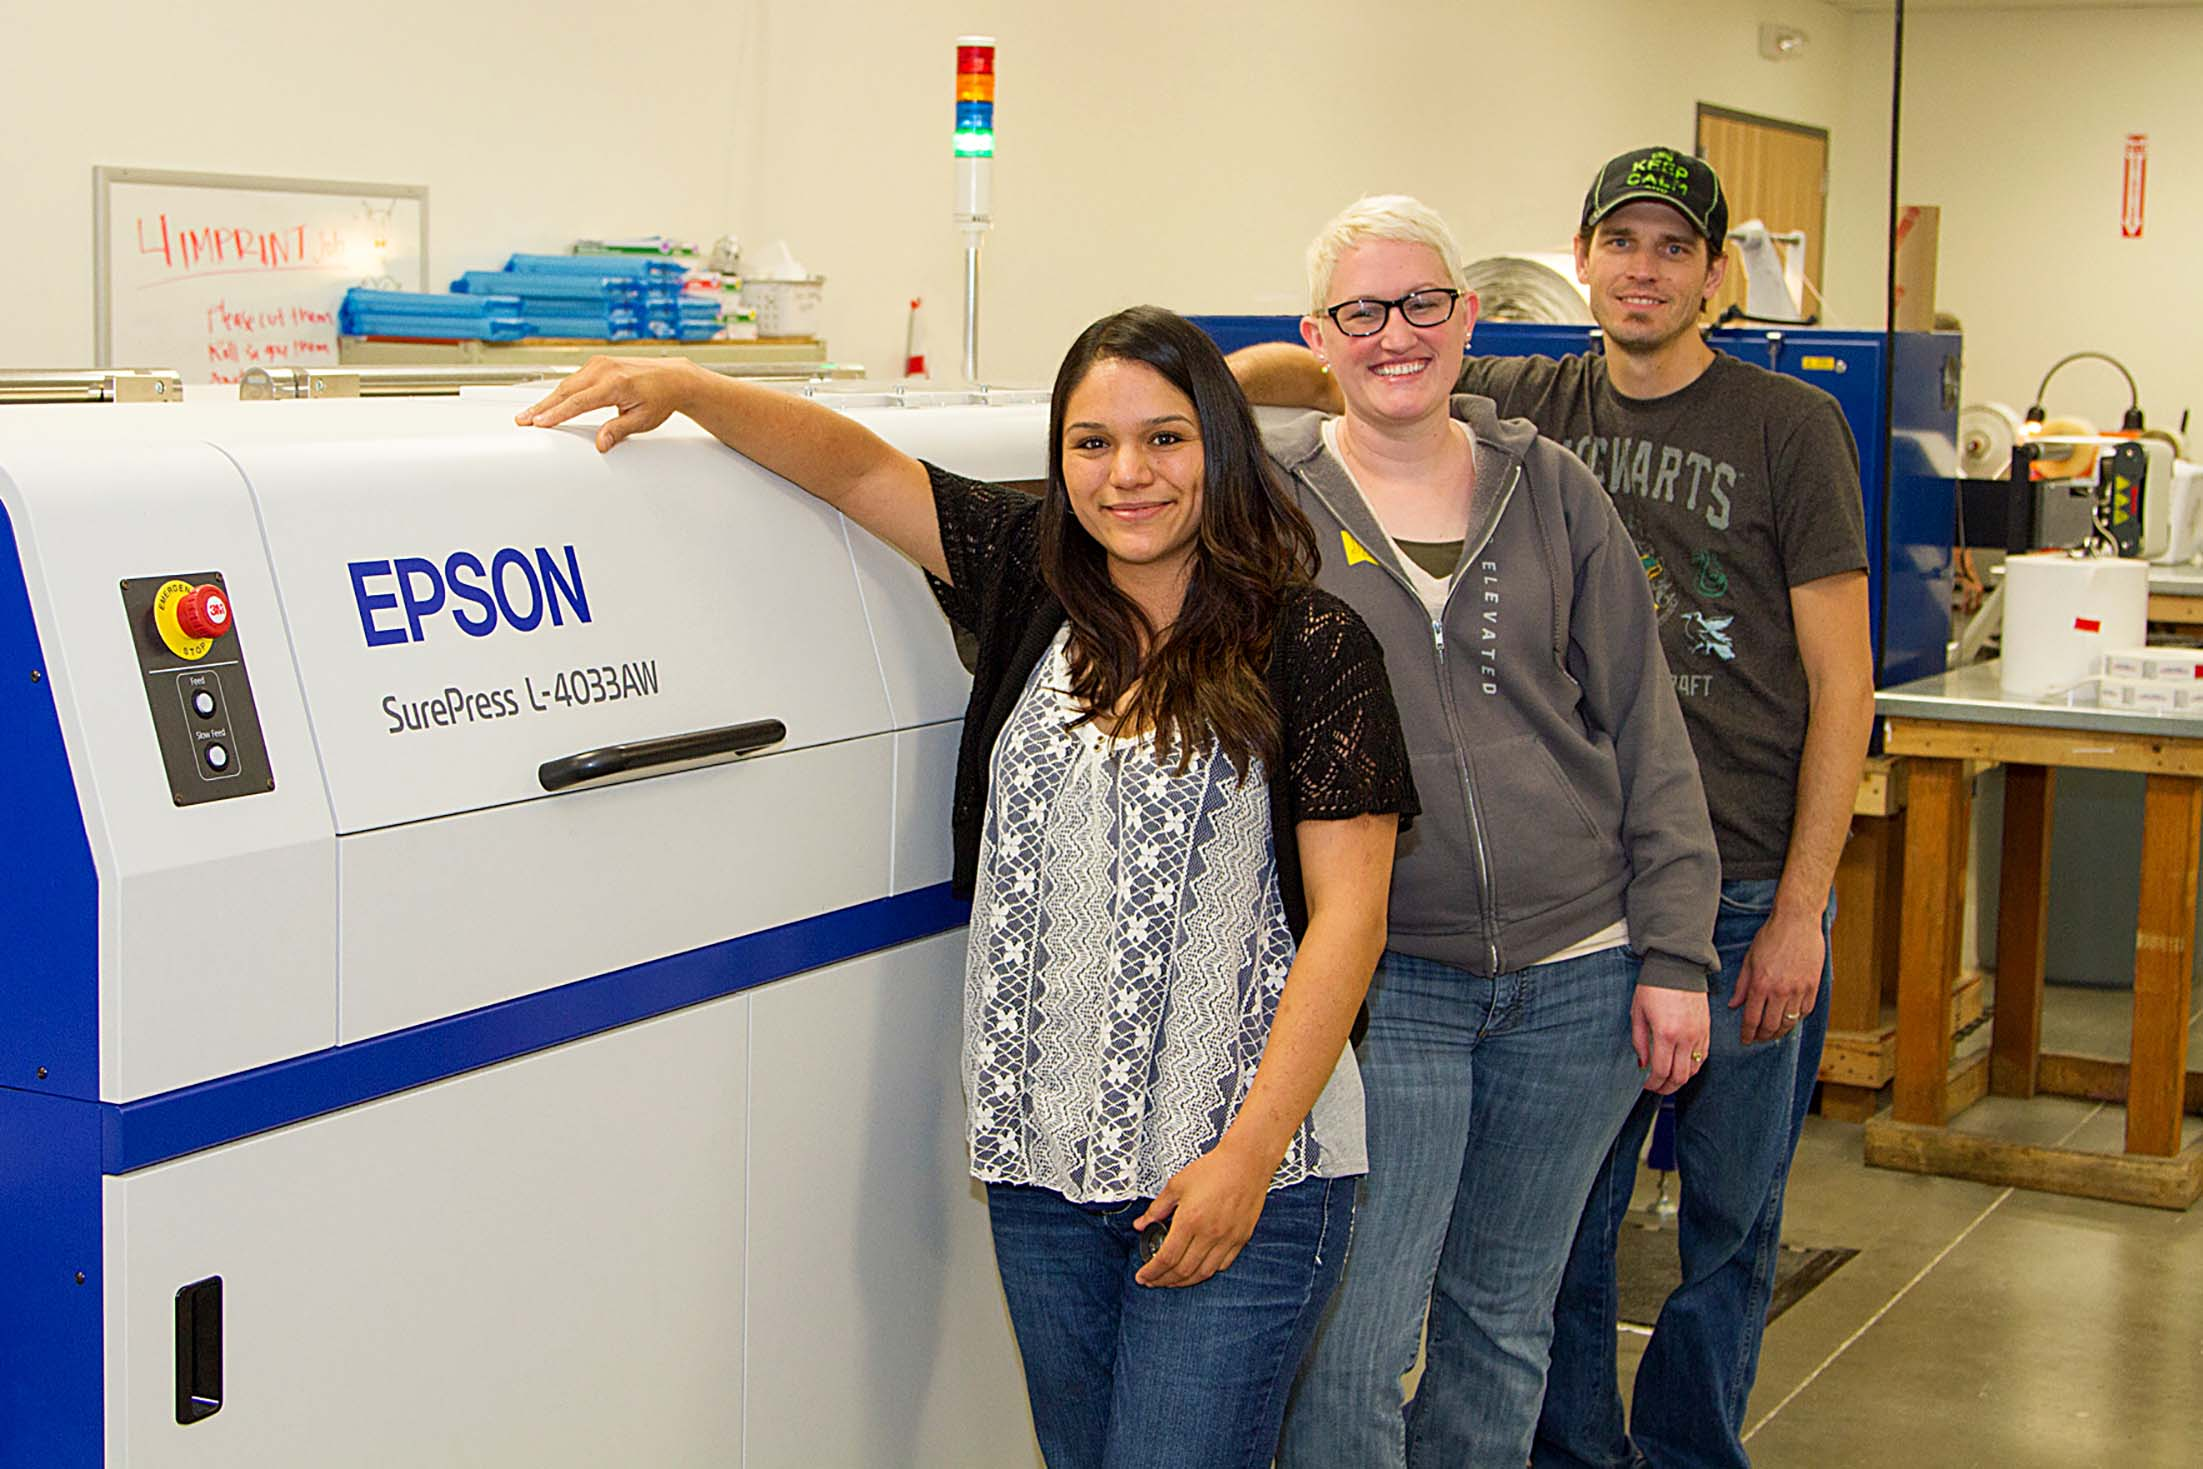 From left to right: Violeta Avalos, Jennifer Imes, and Nathan Champlin from SnugZ USA with the SurePress L-4033AW.